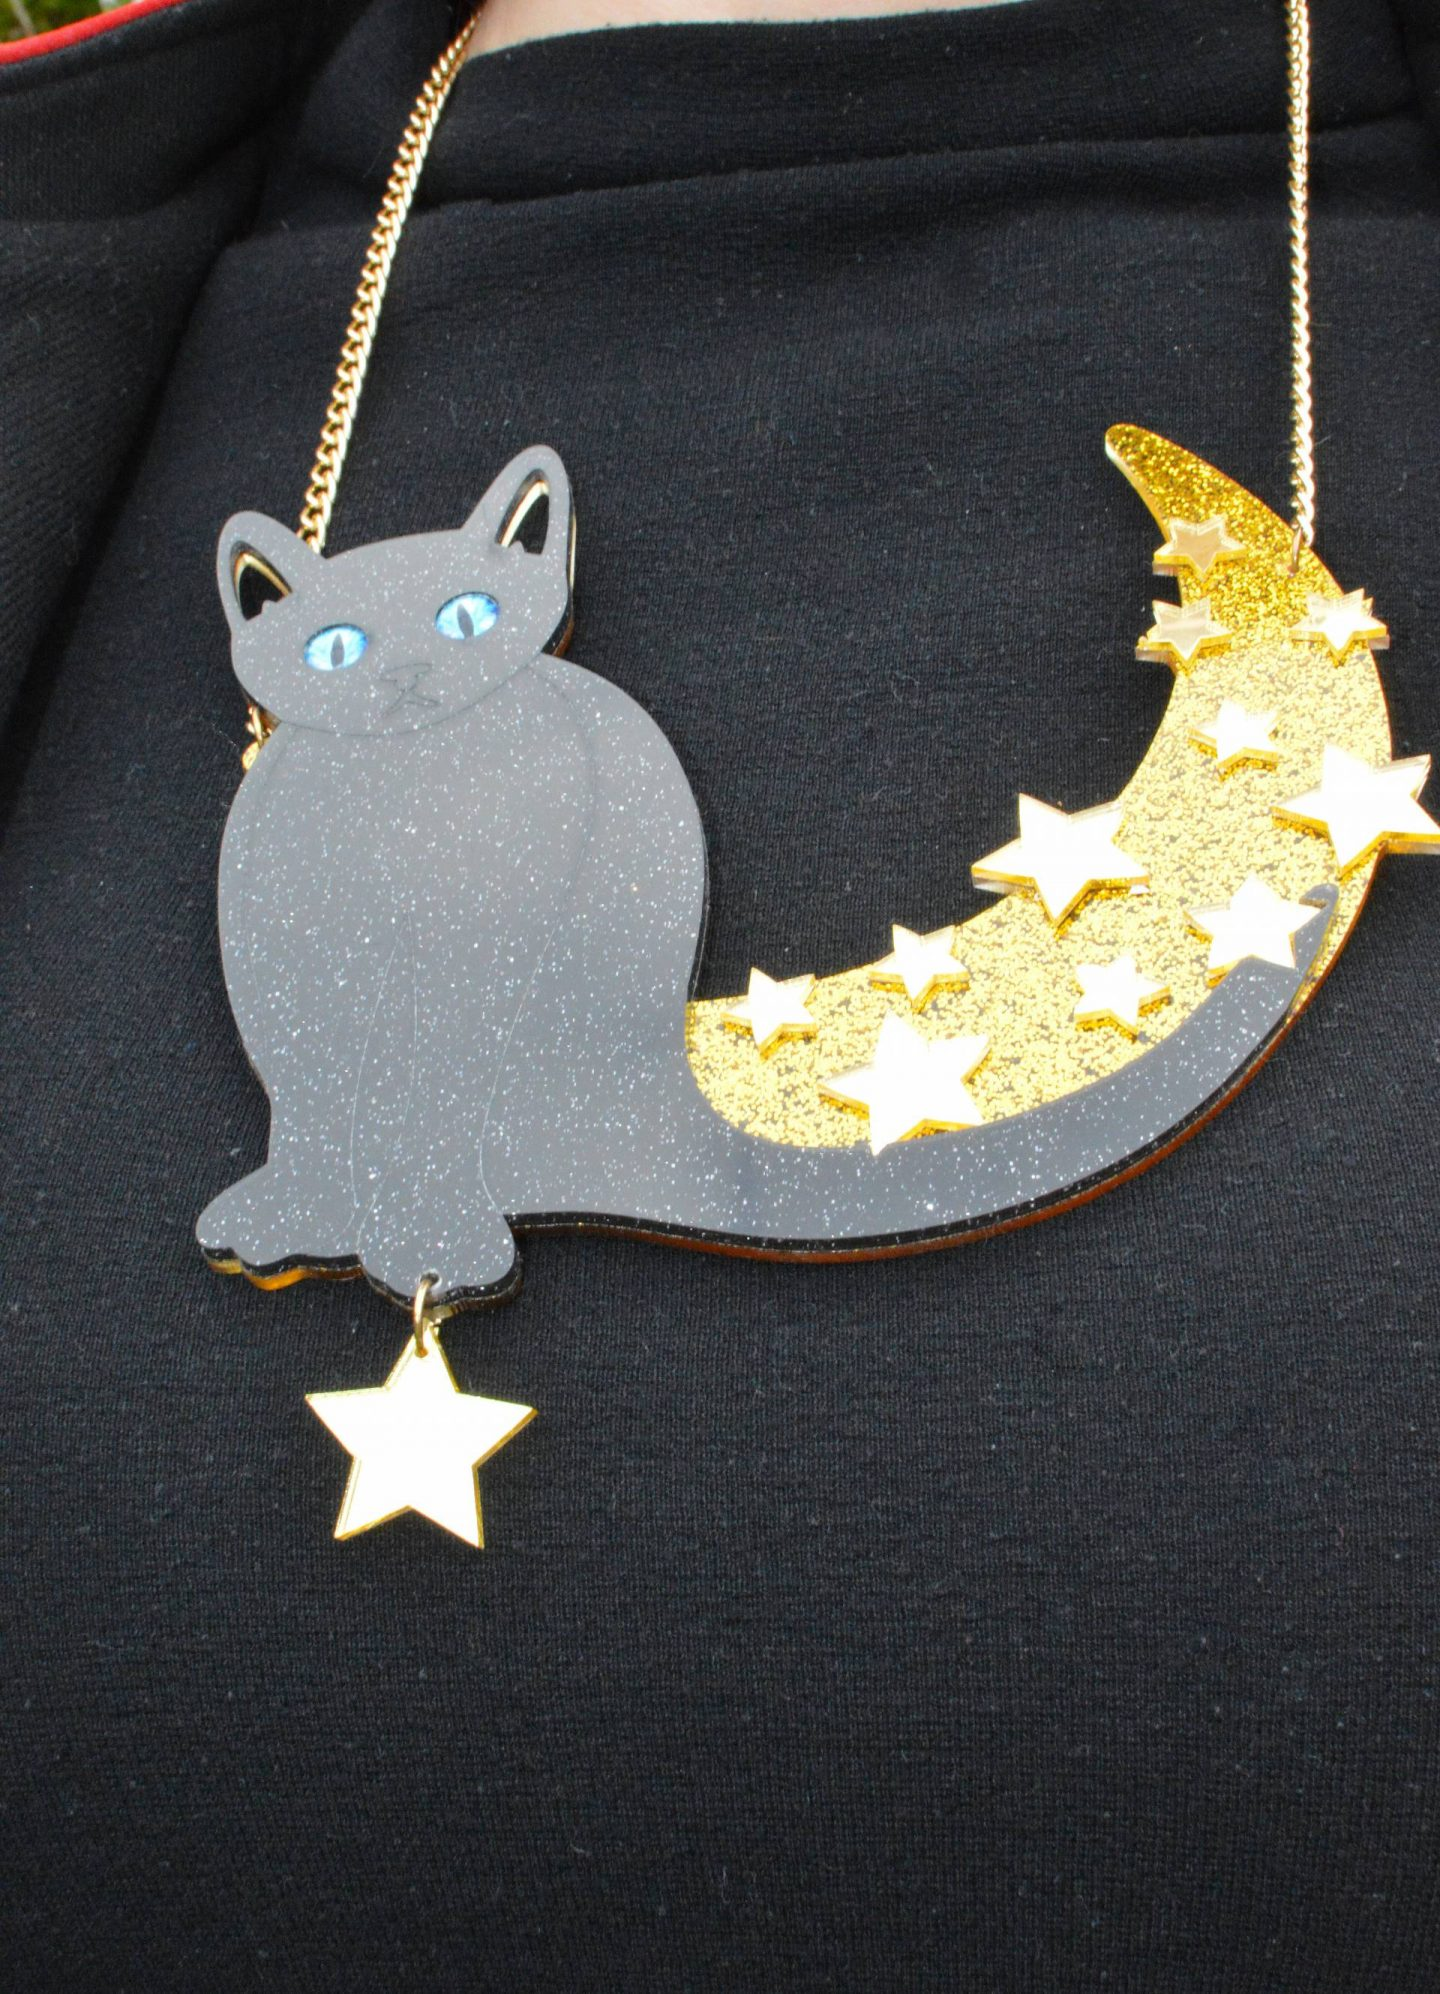 acrylic cat and moon necklace